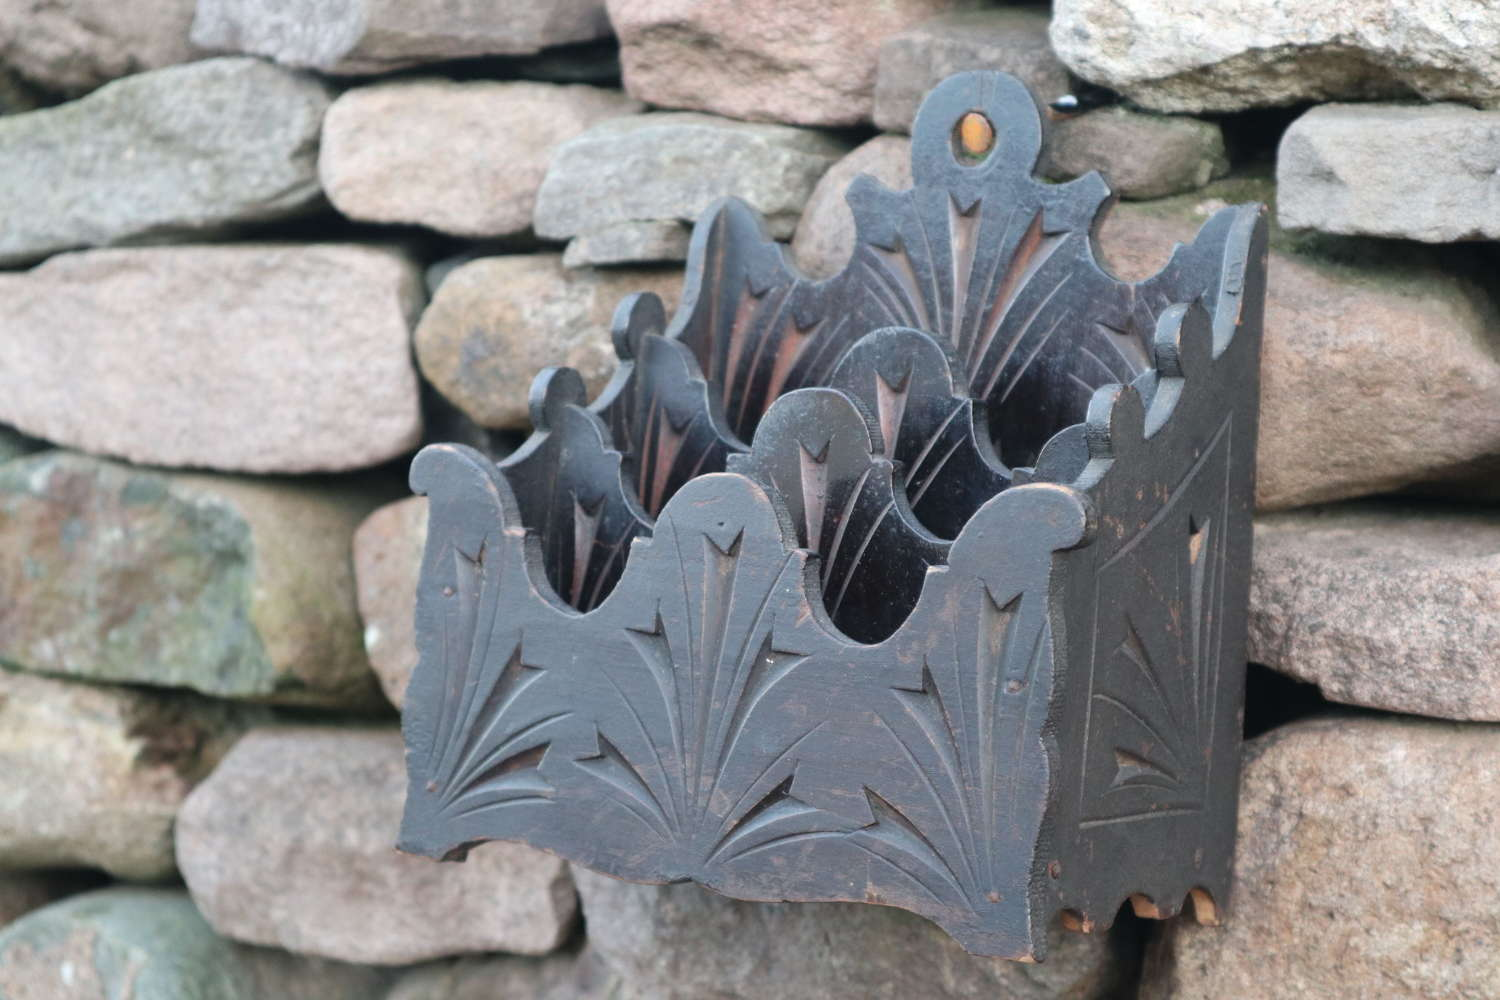 Victorian Gothic stationery / letter rack wall hanging c.1860.